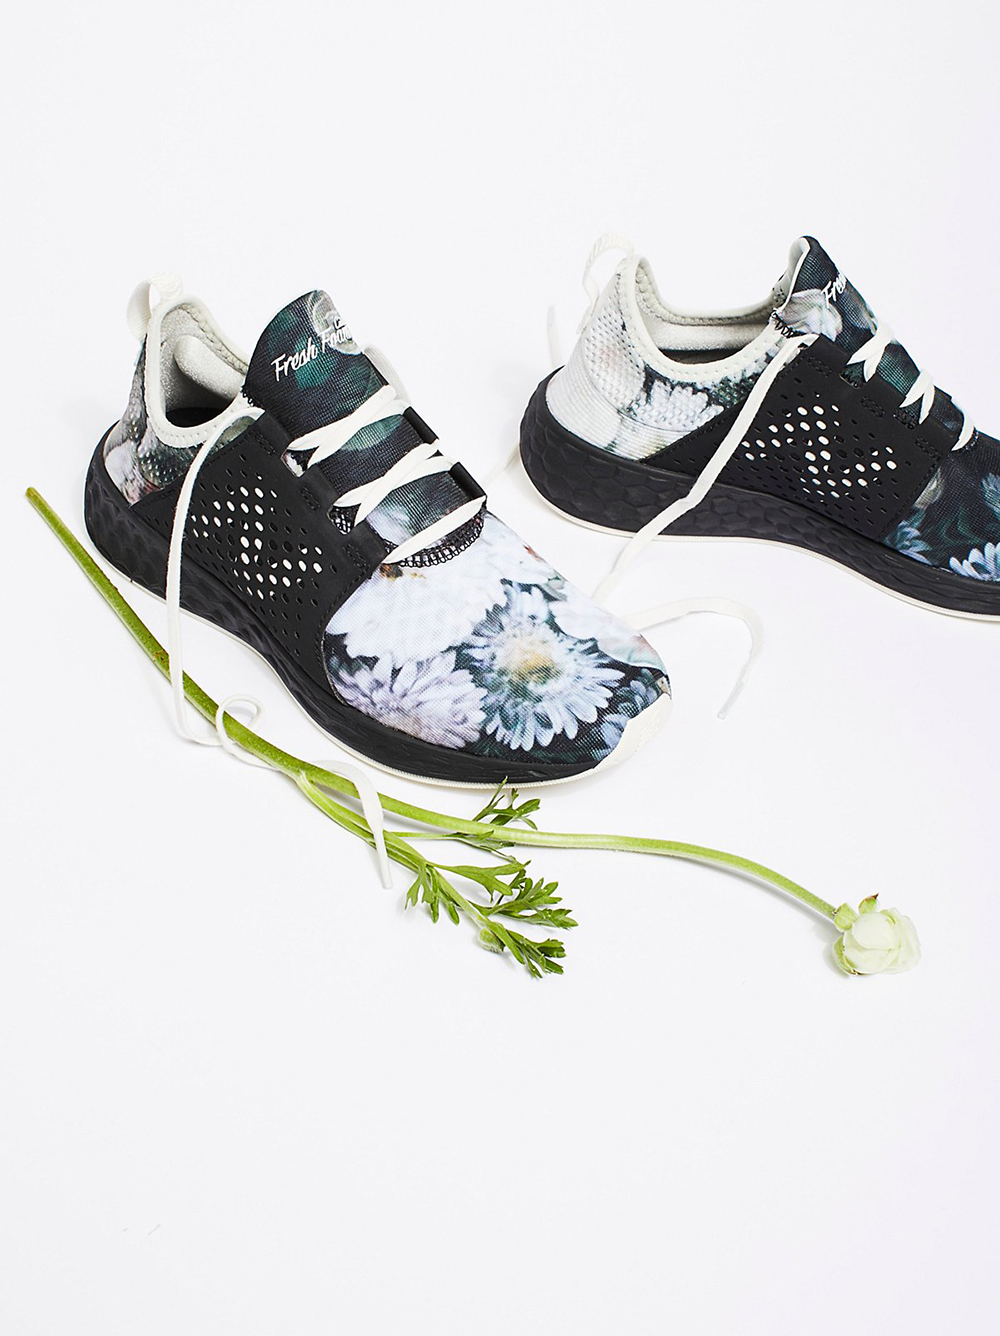 New Balance Fresh Foam Floral Trainer - Statement shoes